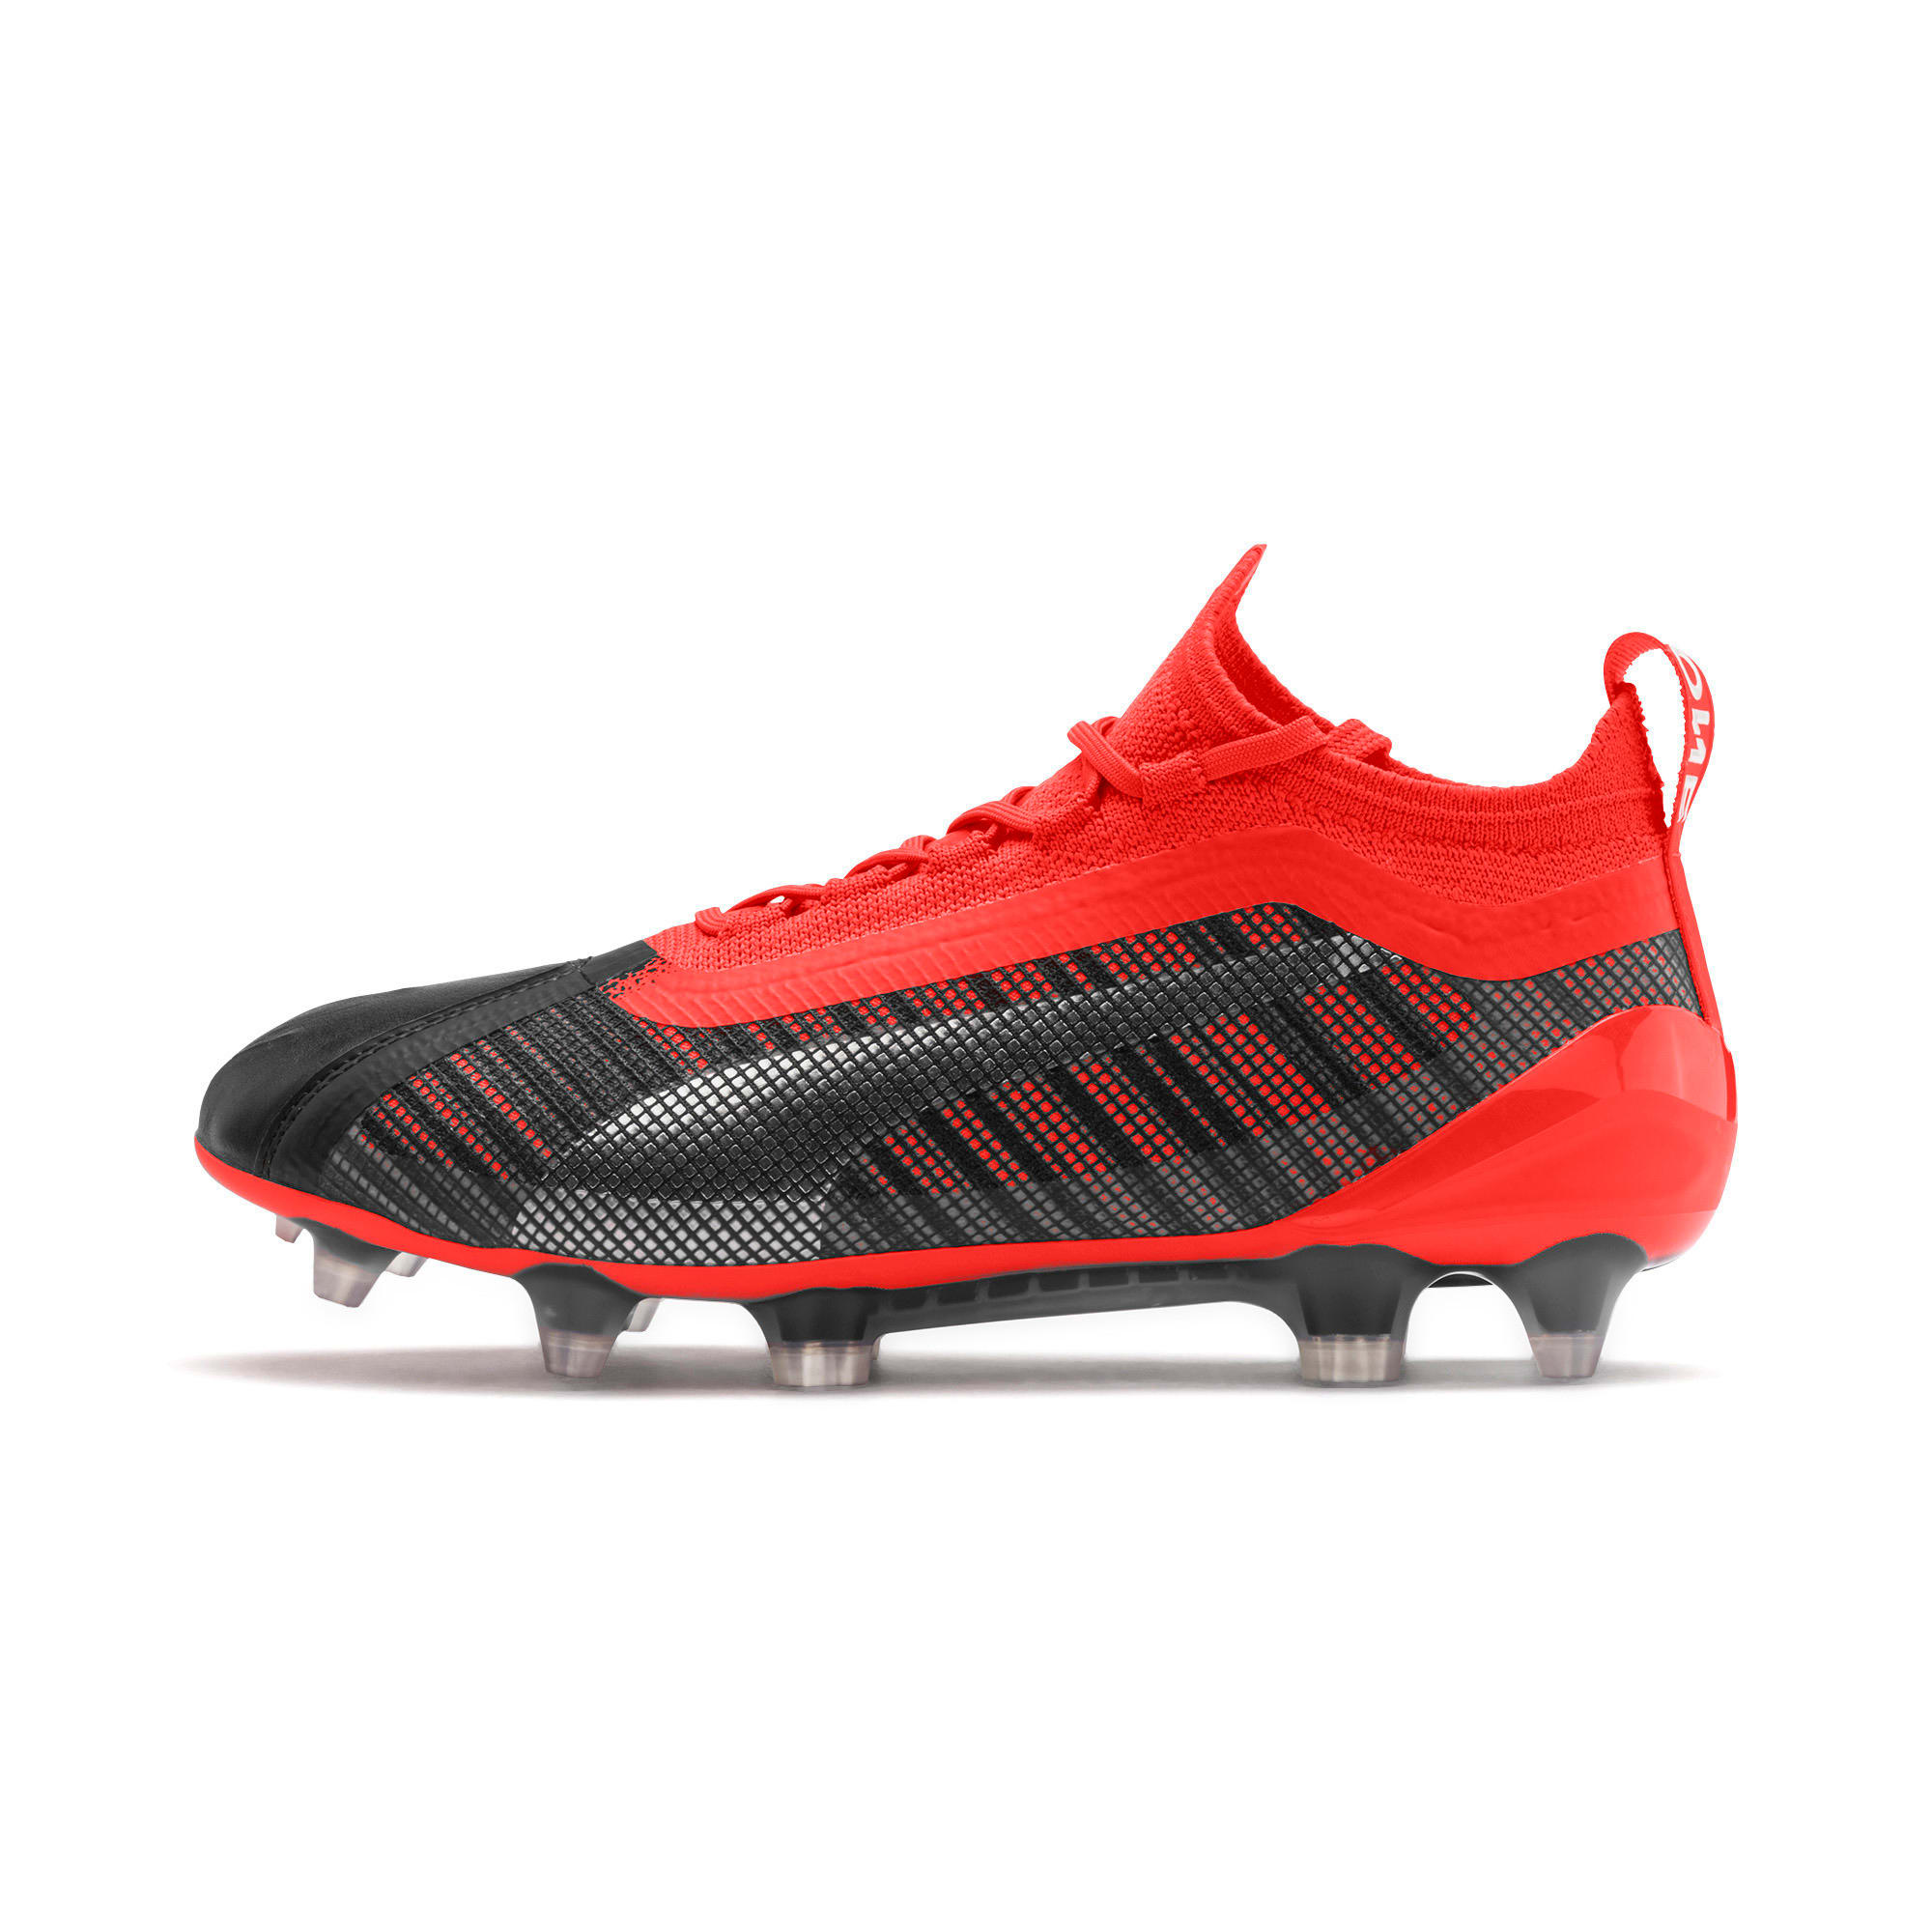 Thumbnail 1 of PUMA ONE 5.1 voetbalschoenen voor jeugd, Black-Nrgy Red-Aged Silver, medium